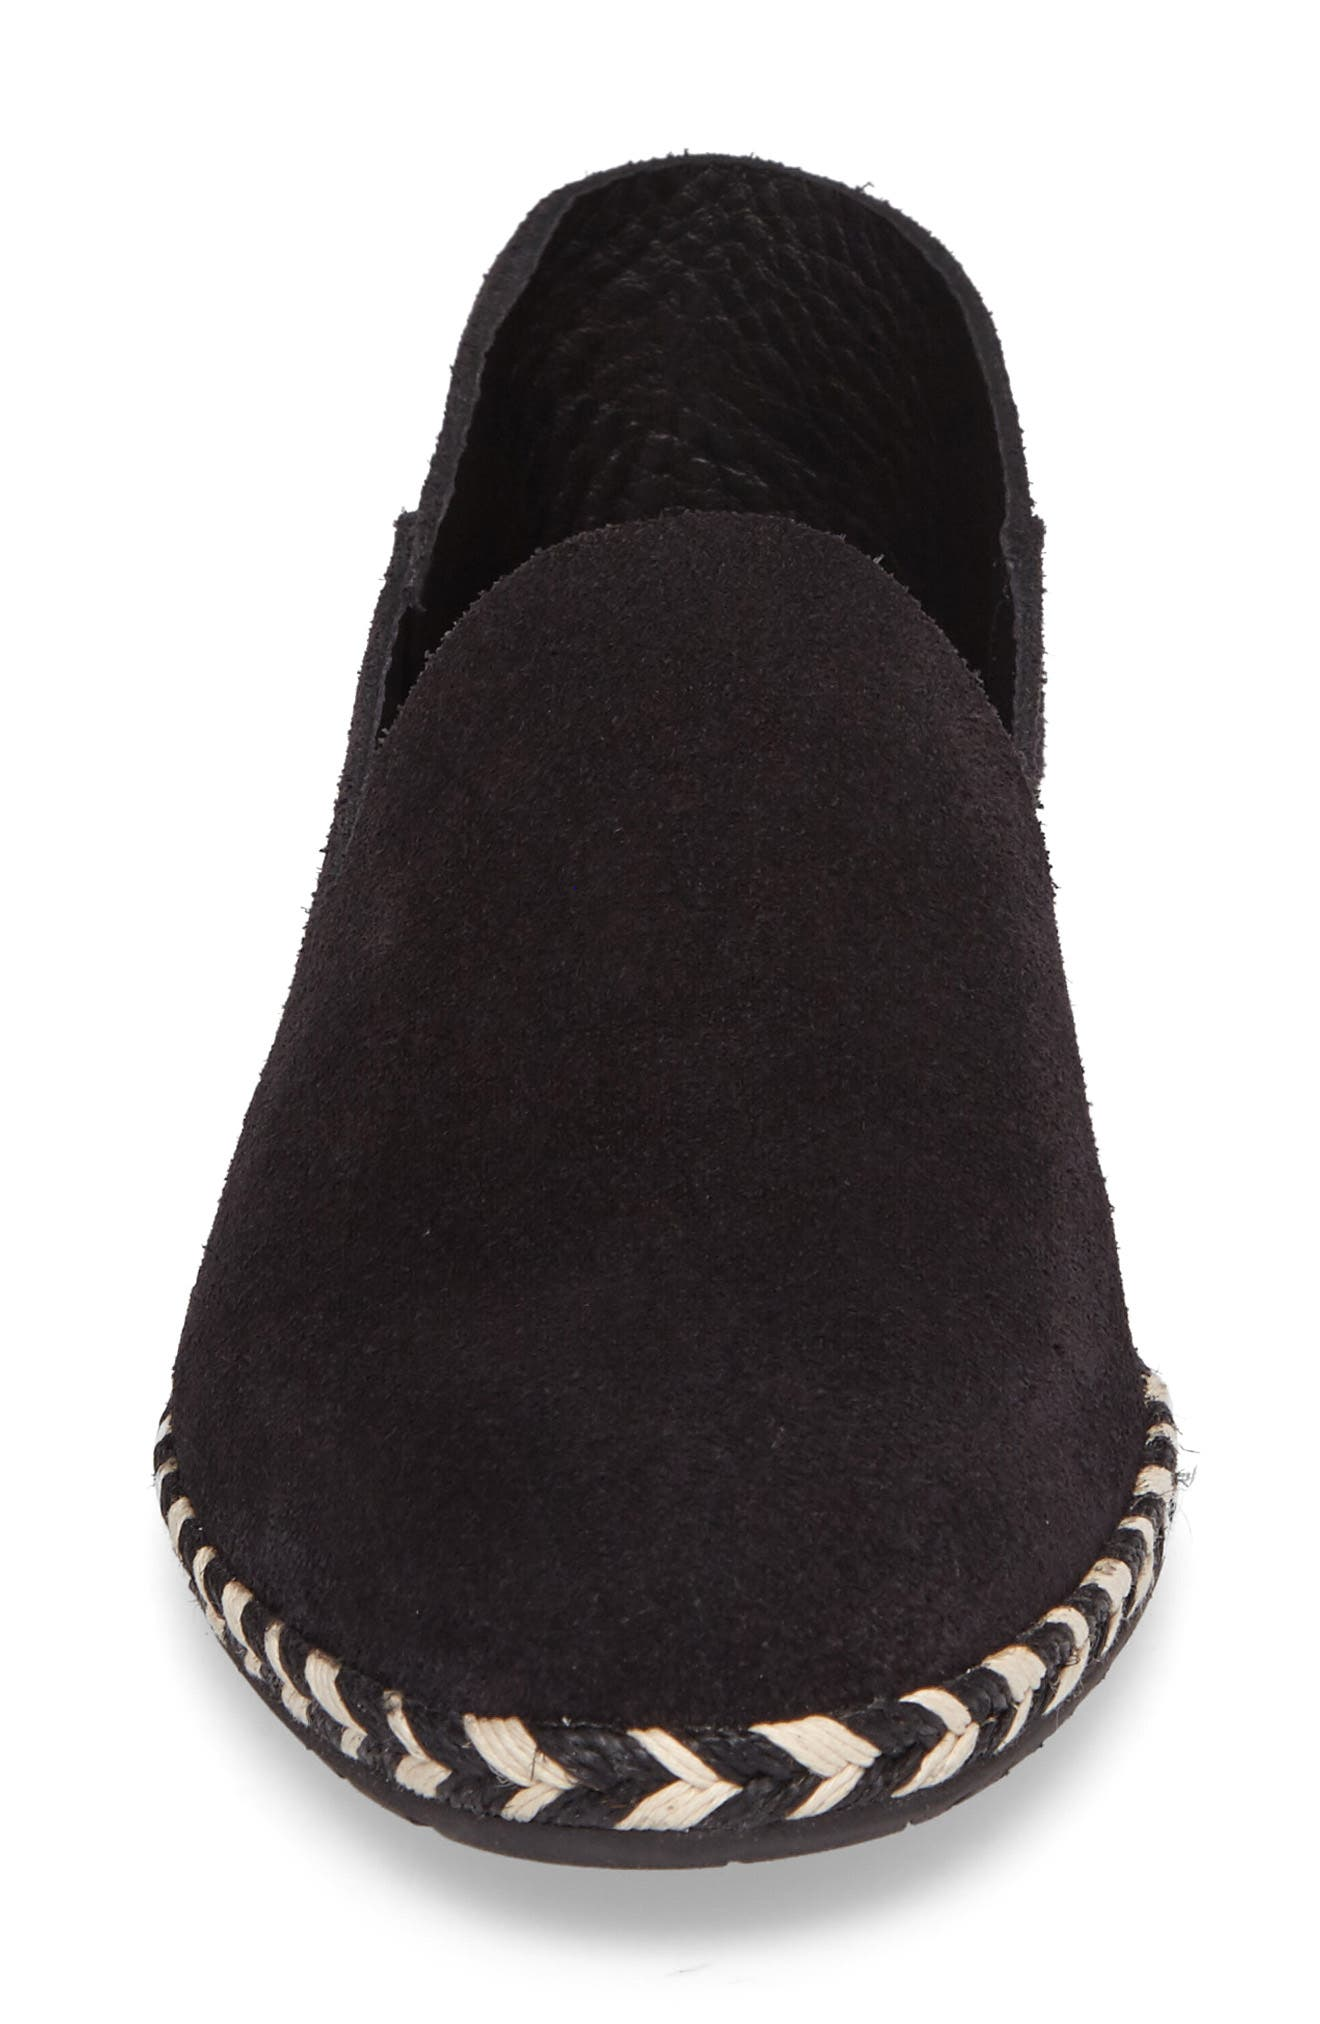 Yuli Convertible Woven Loafer,                             Alternate thumbnail 4, color,                             Black